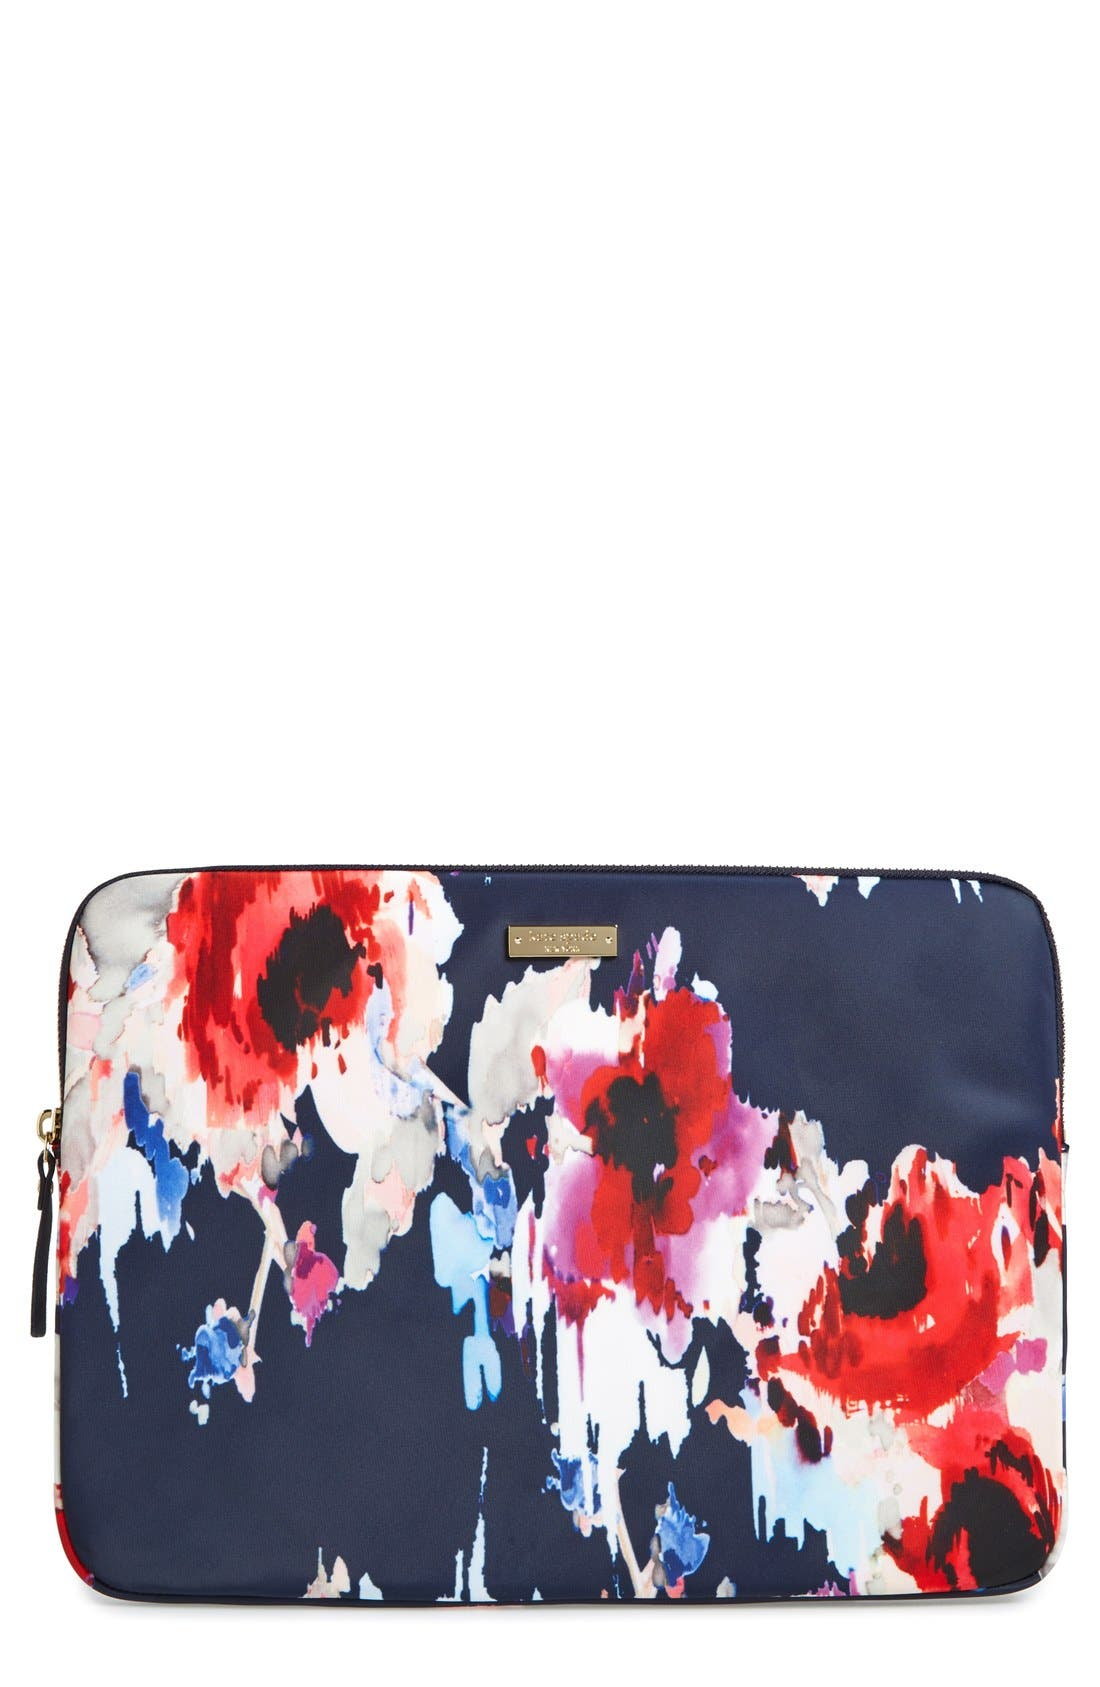 Main Image - kate spade new york 'hazy floral' laptop sleeve (13 inch)